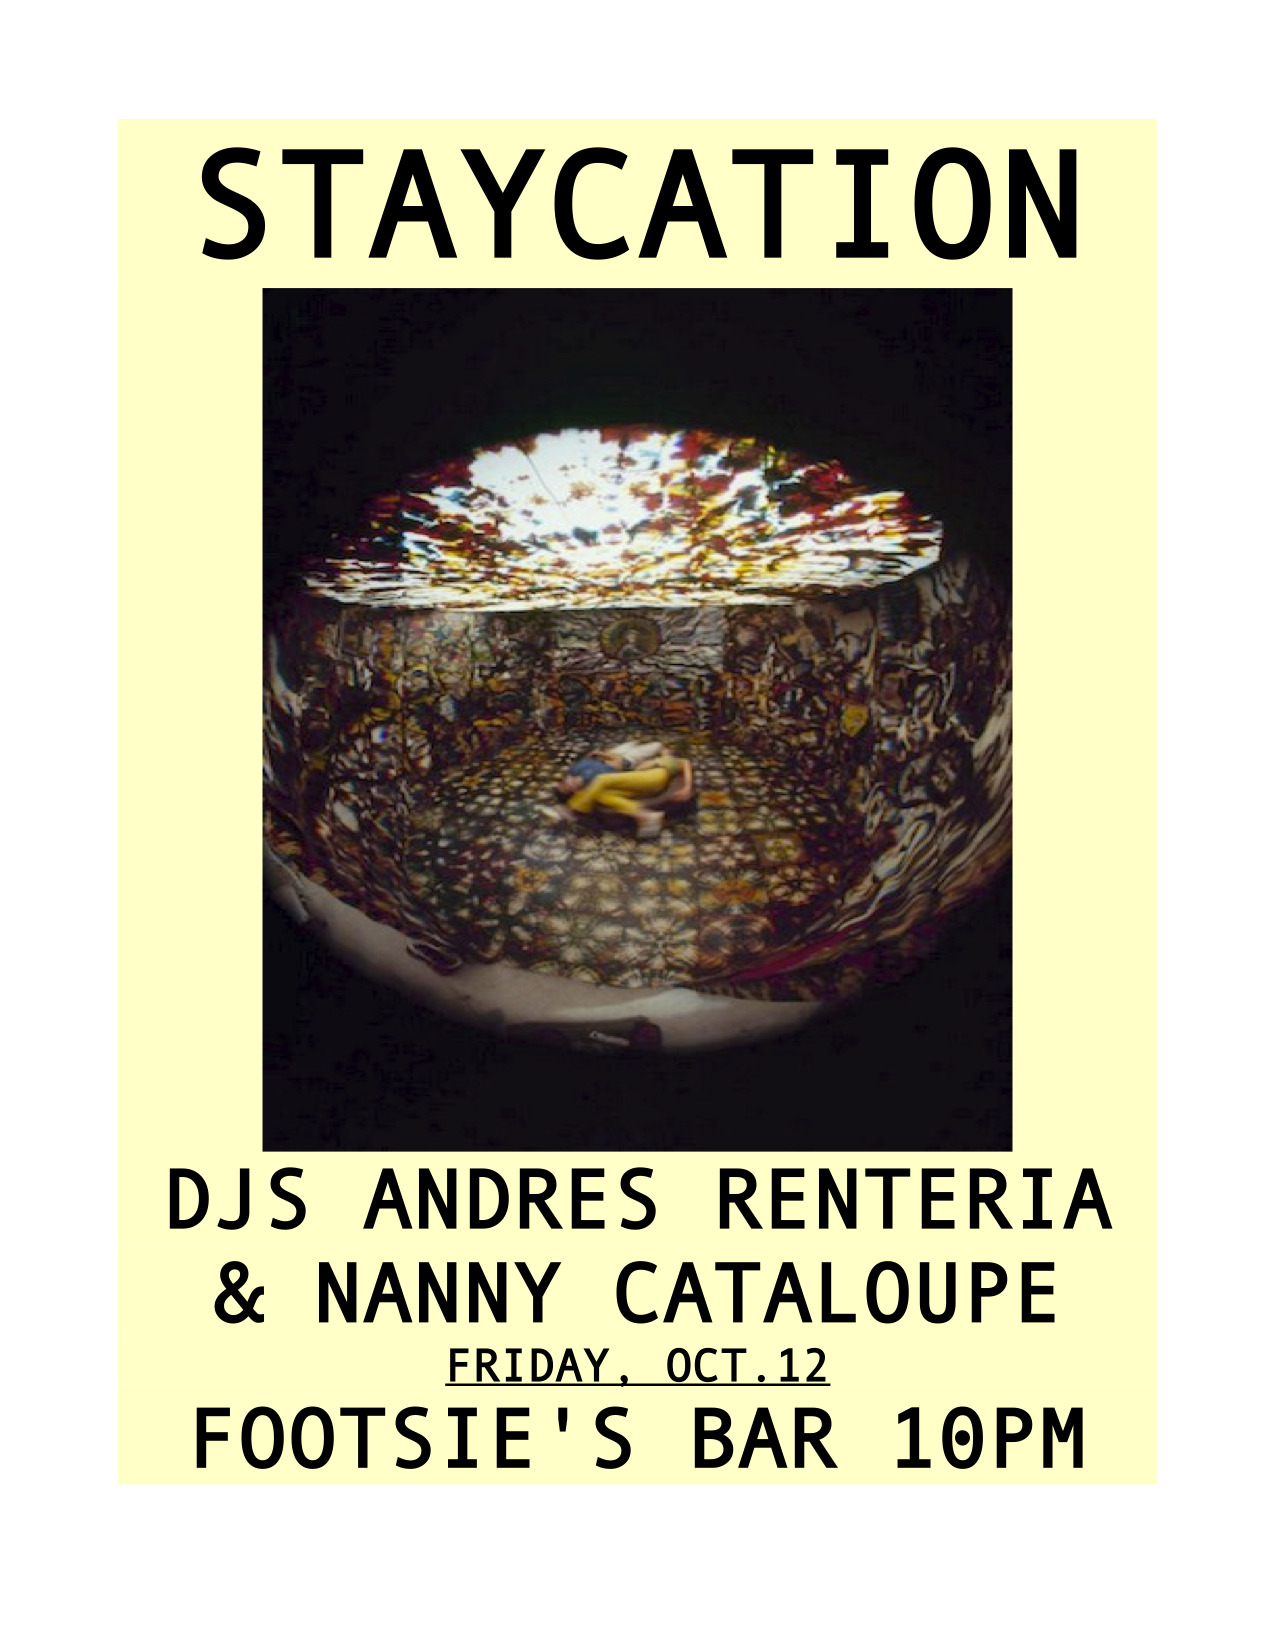 STAYCATION tonight at Footsie's Bar!!  FREE from 10pm-2am…rock, soul, funky 45s, international shakers, and more!!  Nanny Cantaloupe and I, Andres Renteria, will be spinning the records!!!